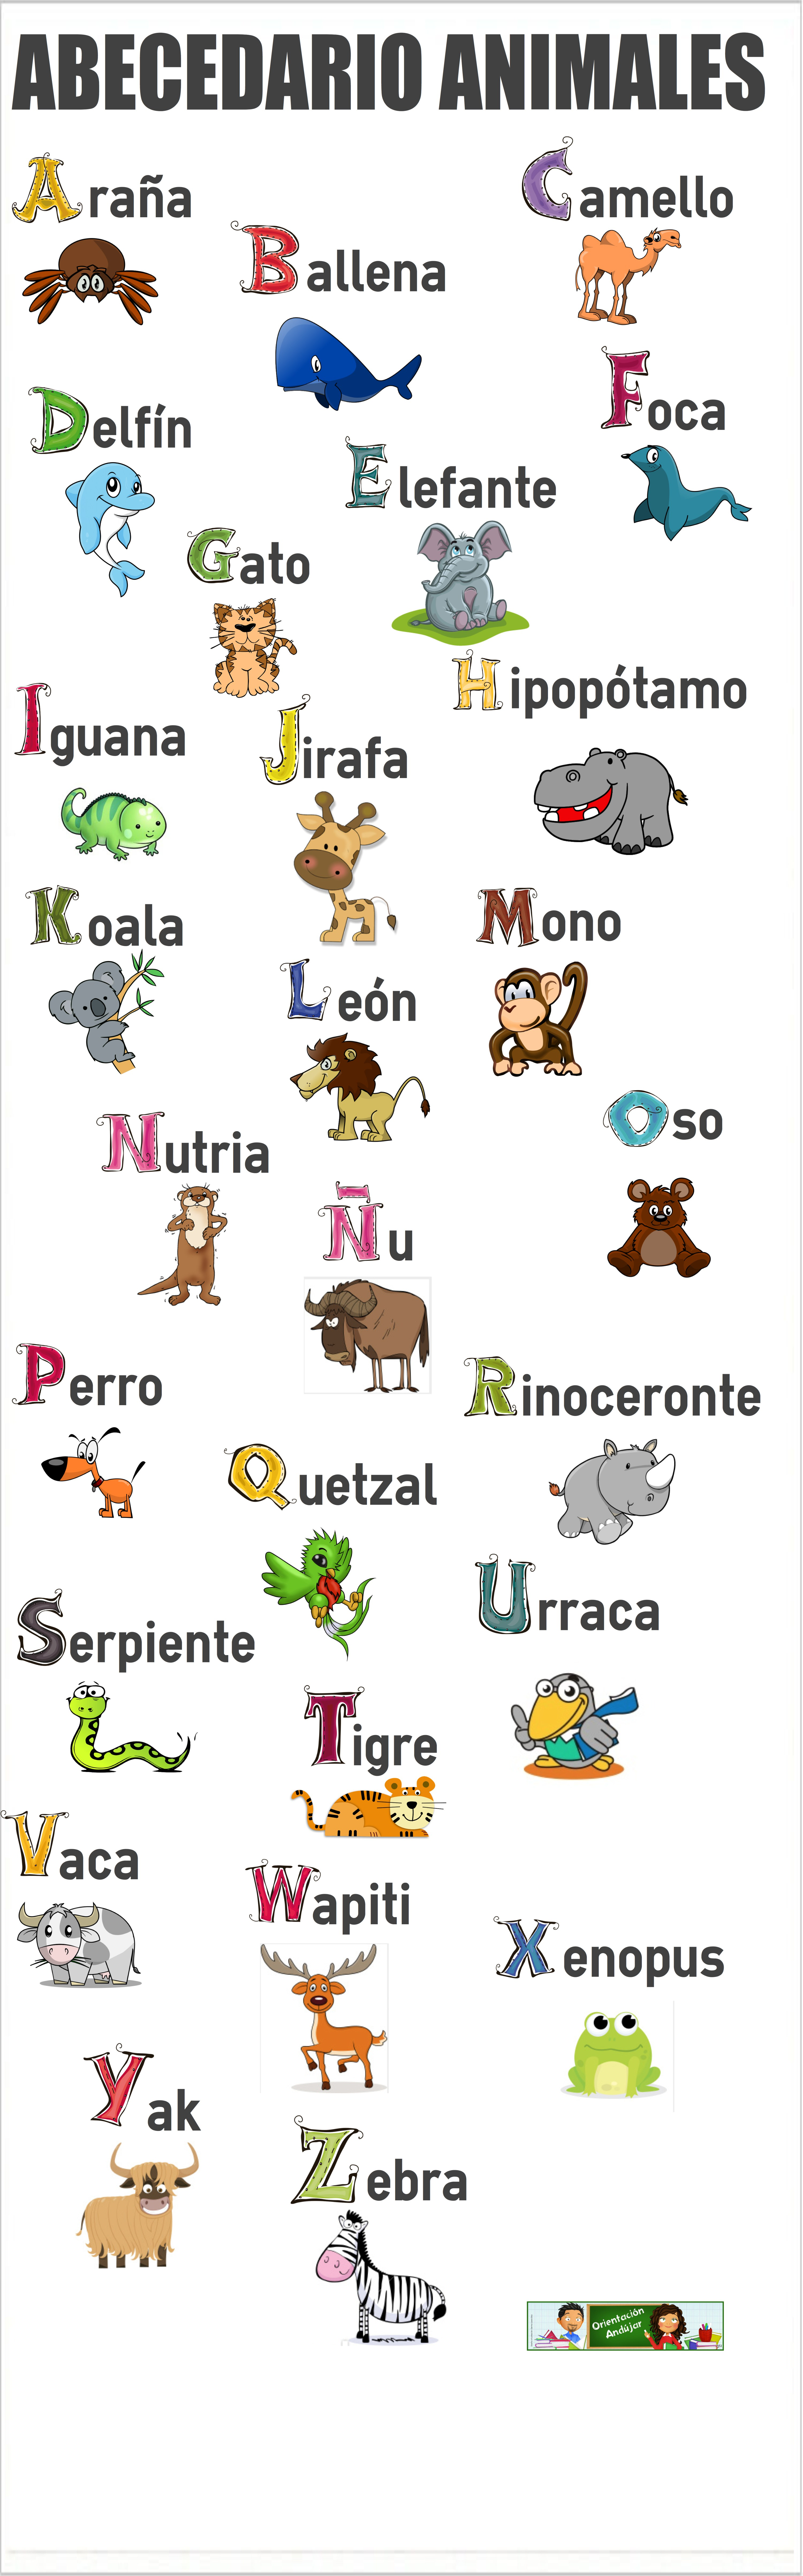 El Abecedario De Los Animales Orientacion Andujar Learning Spanish Spanish Language Learning Spanish Kids